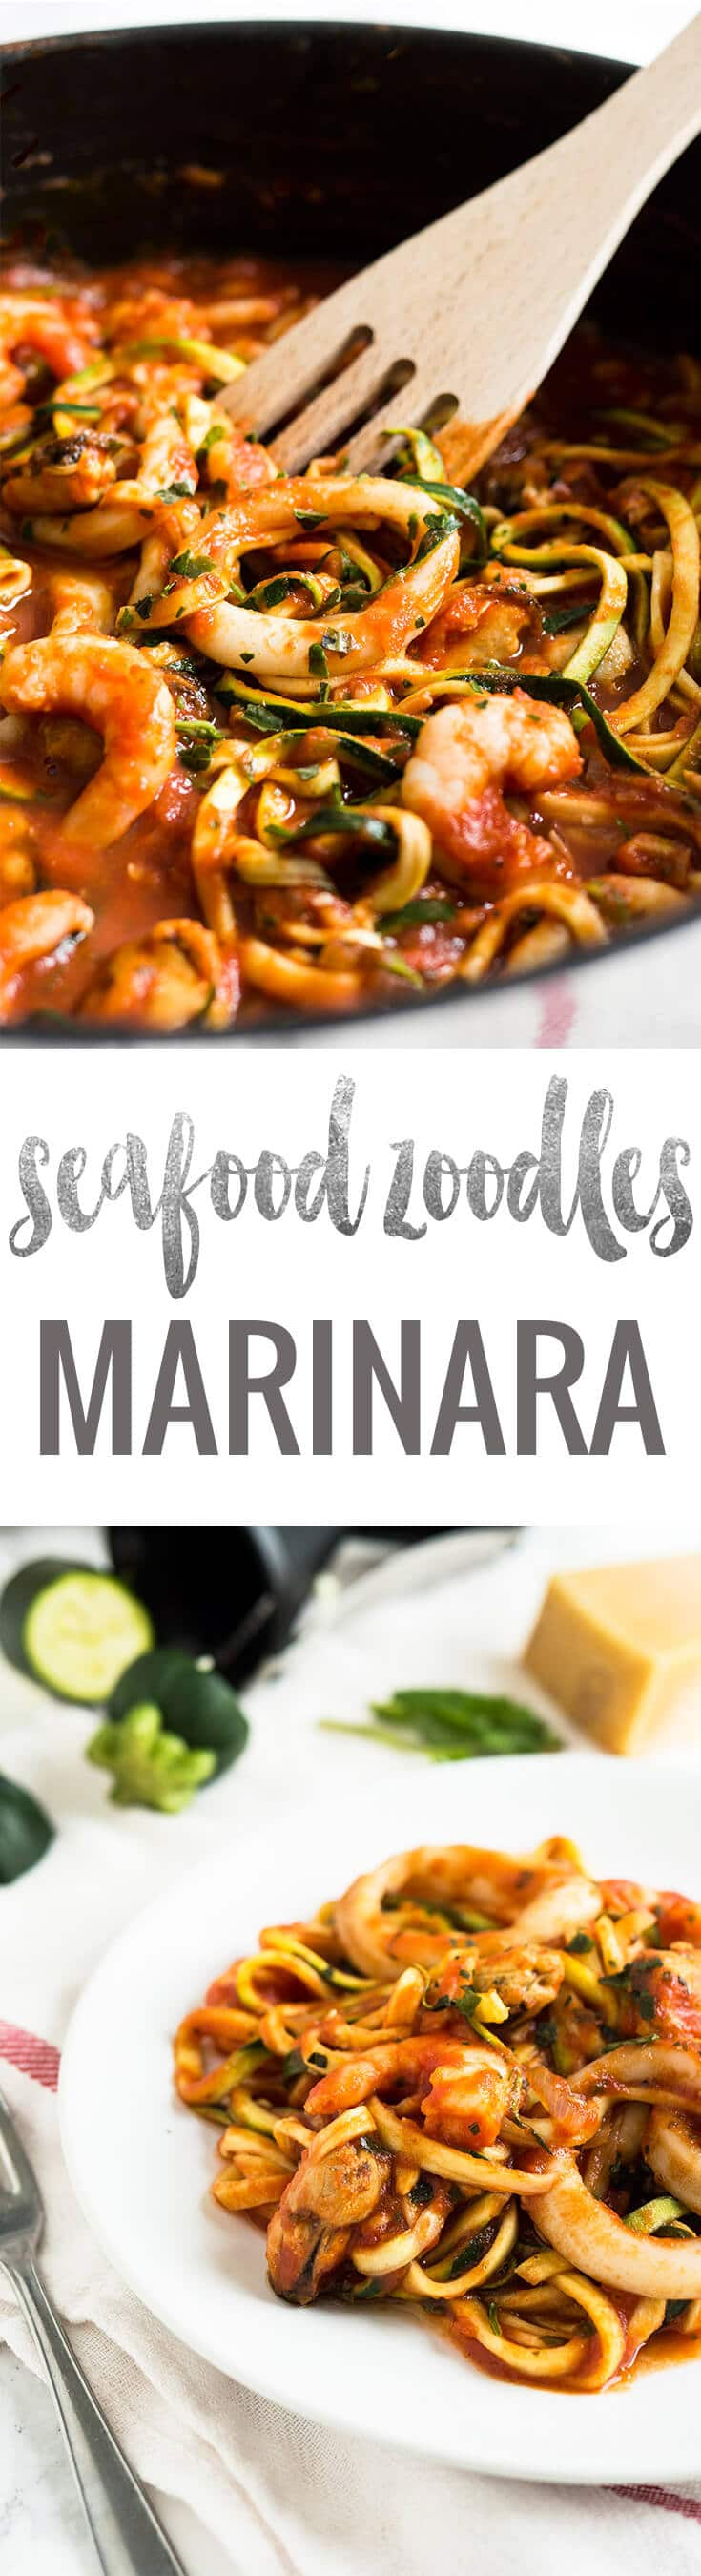 Seafood Zucchini Marinara makes a great quick and easy weeknight dinner! Replacing normal pasta with zoodles is a great way to eat healthier.